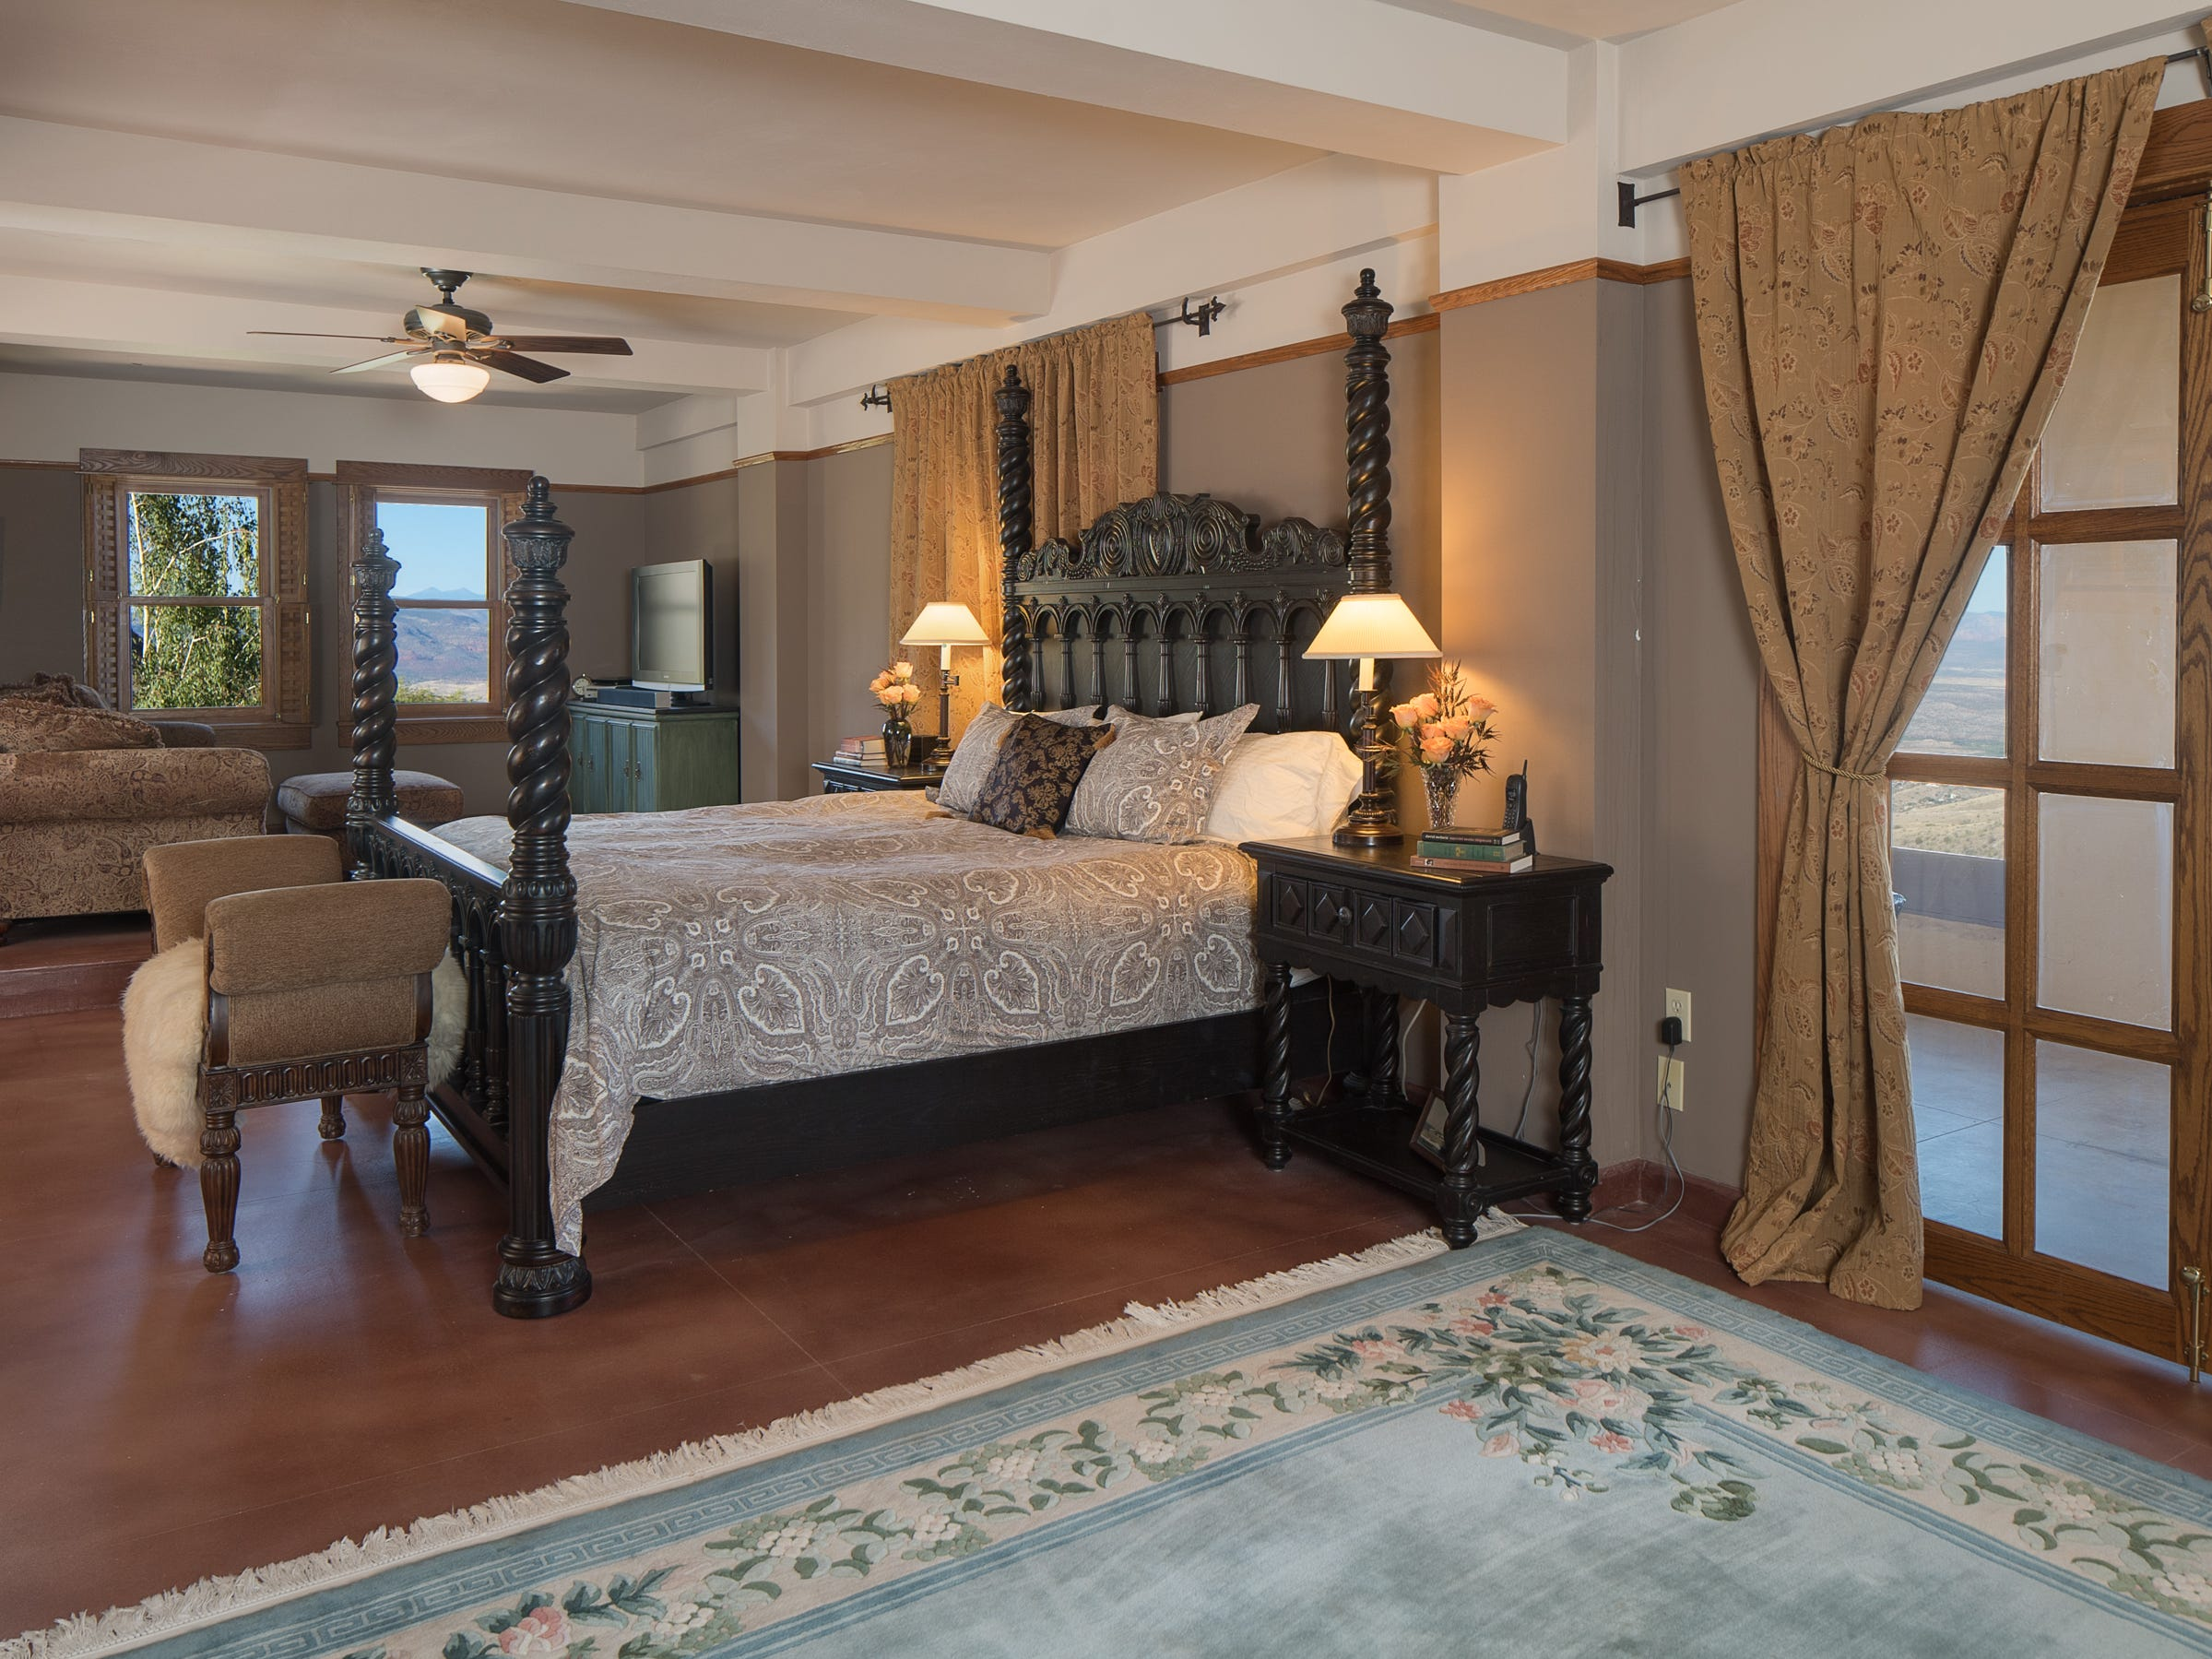 The master bedroom is seen in the 100-year-old former Little Daisy Hotel in Jerome, which was later turned into a single-family home and is now on the market.